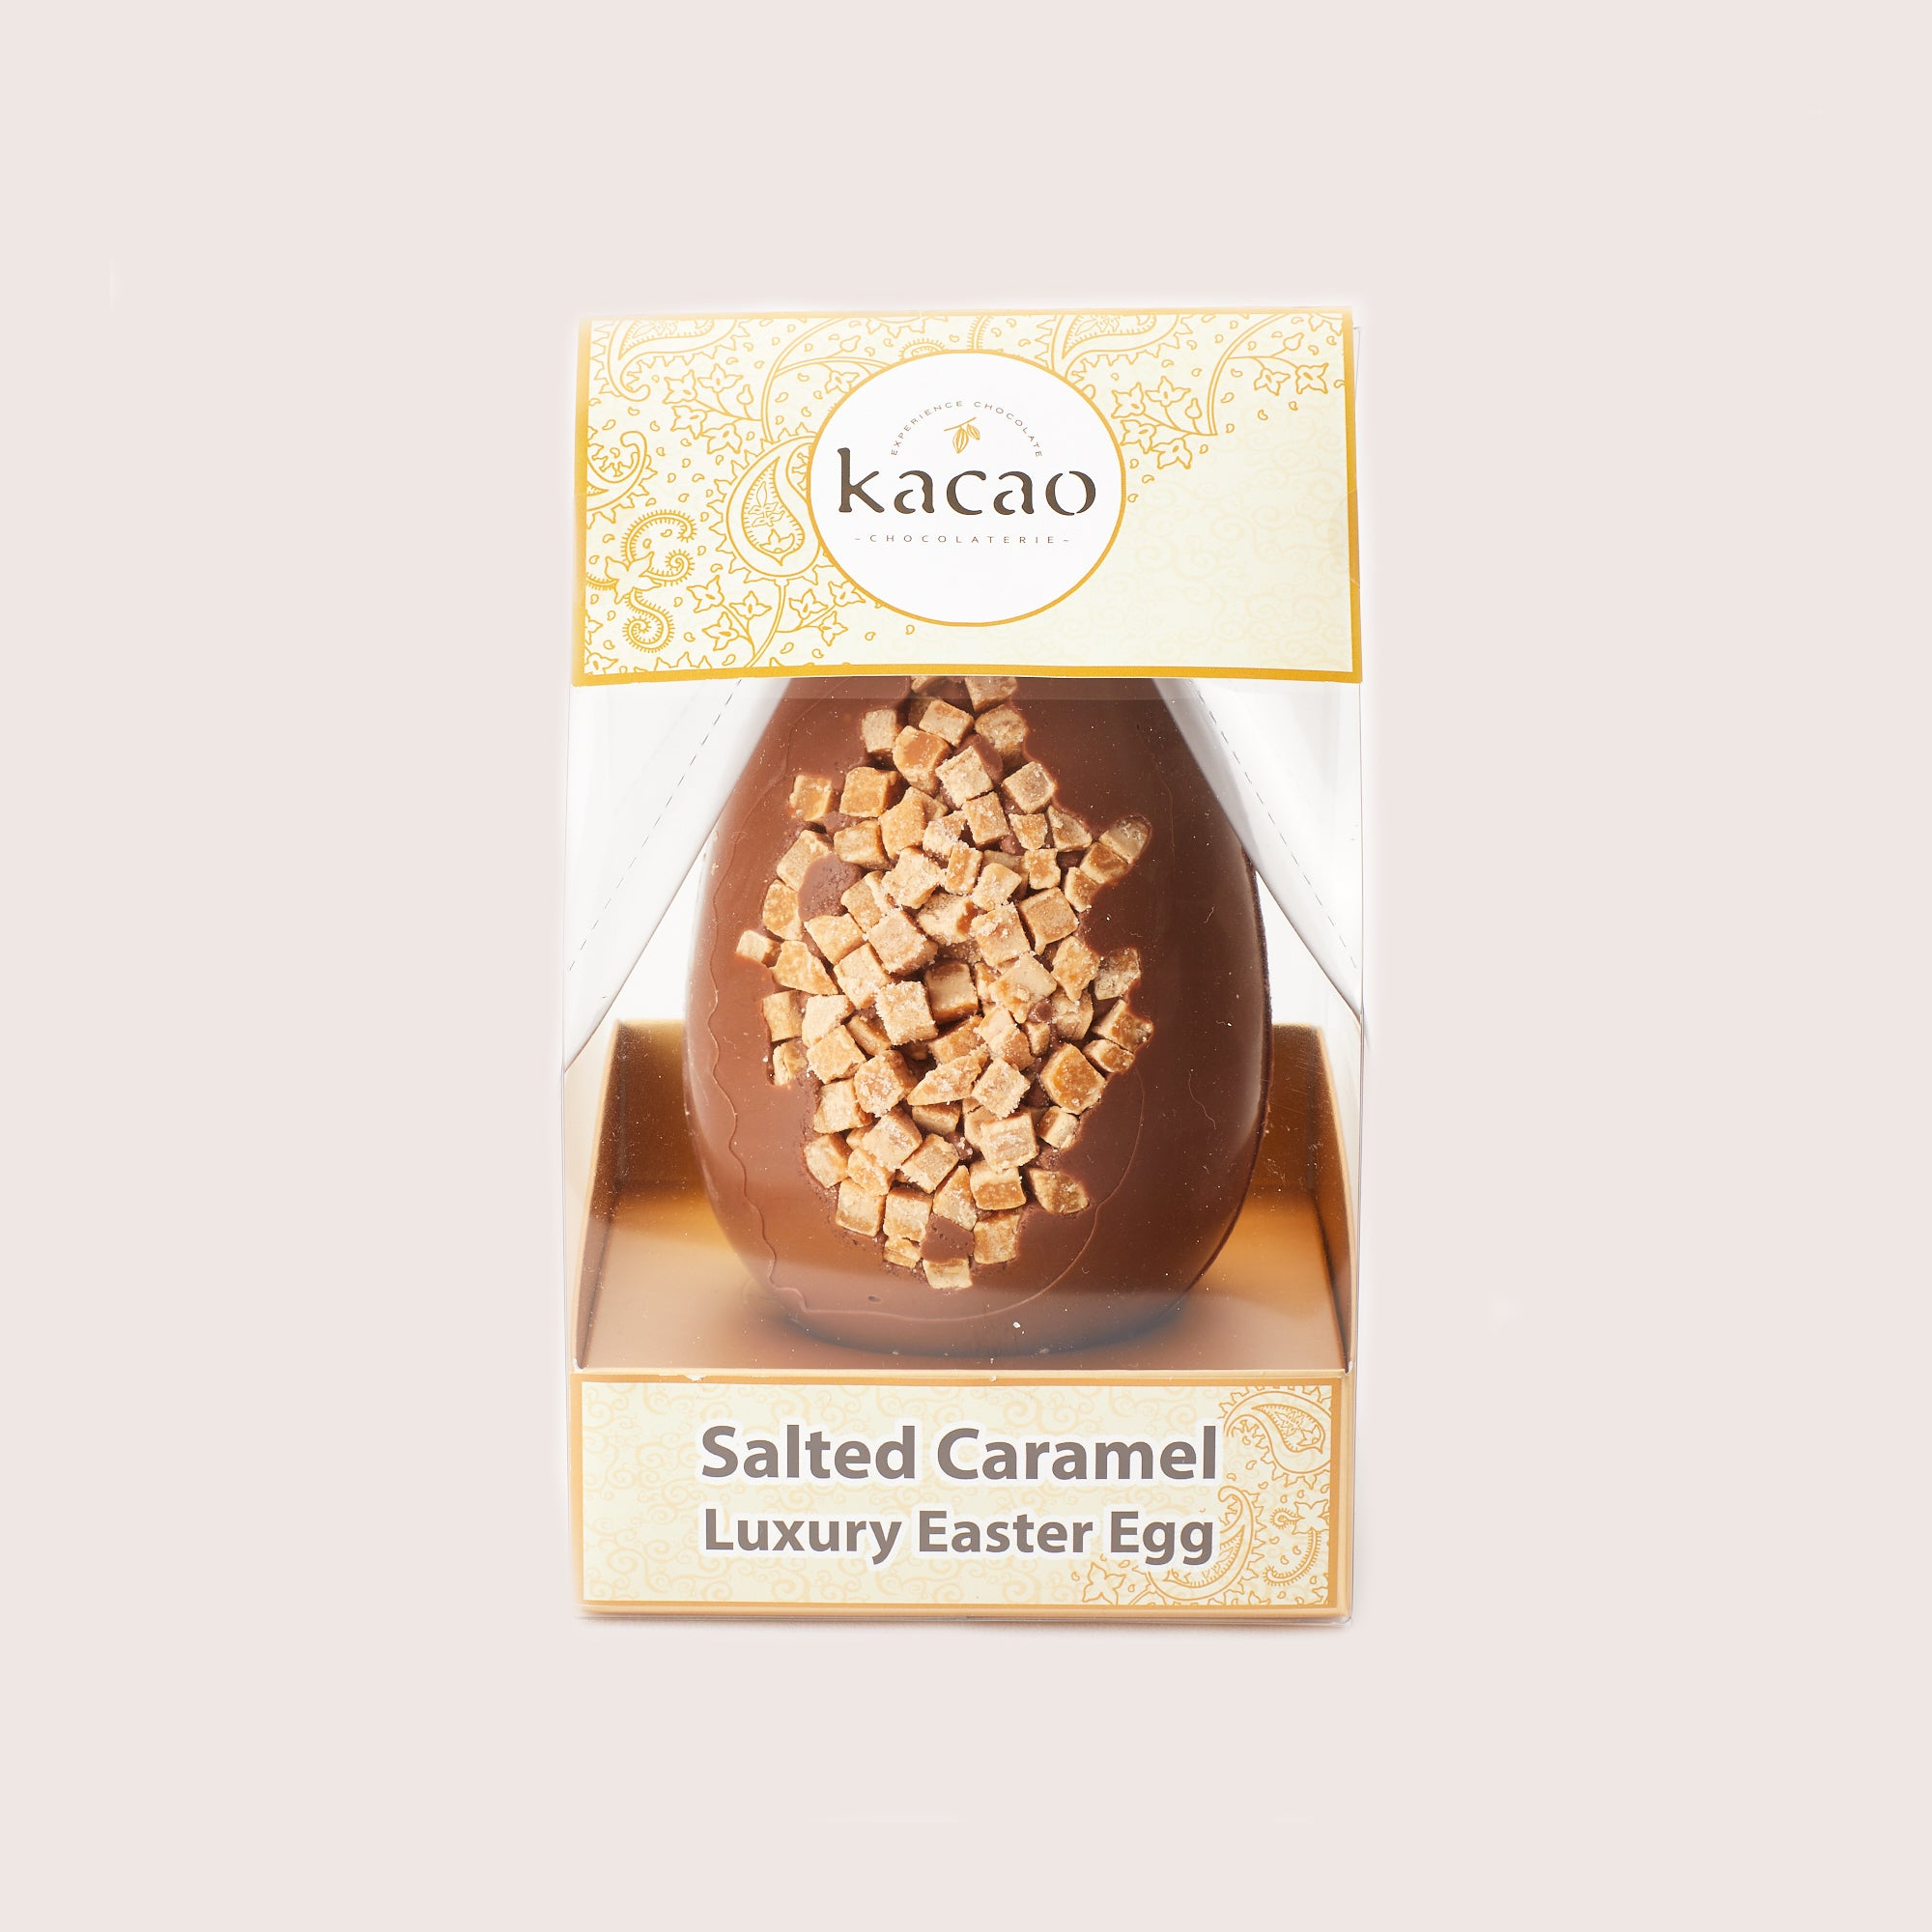 Salted Caramel Luxury Easter Egg